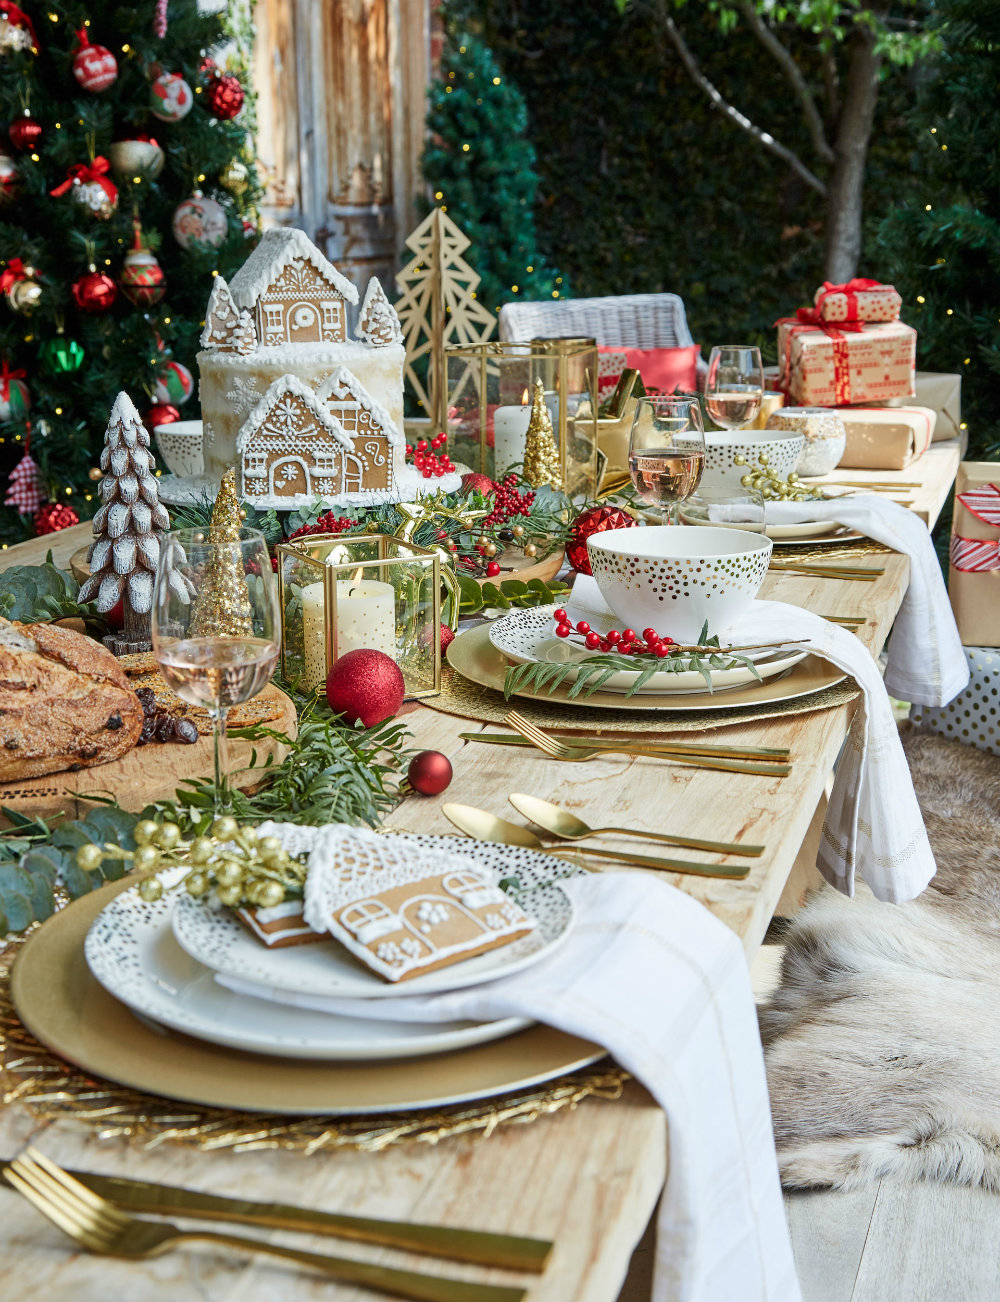 5 Elegant Christmas Table Décor Ideas 02 Christmas Table Décor 5 Elegant Christmas Table Décor Ideas 5 Elegant Christmas Table D  cor Ideas 02